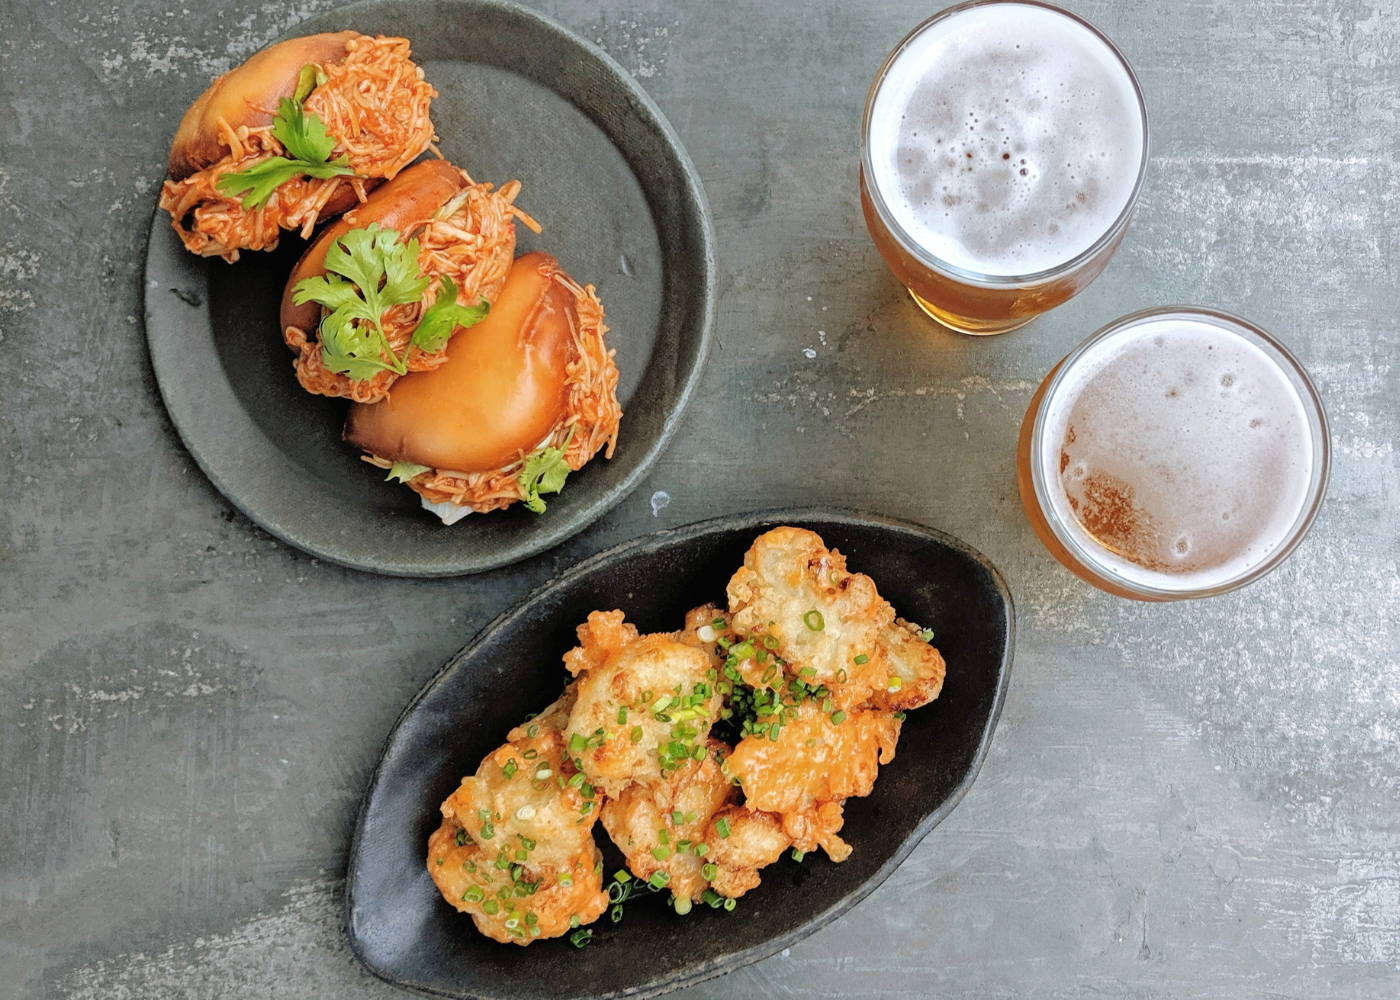 Almost Famous x Meatless: Chili Crab Sliders and Buffalo Cauliflower, with craft beers West Side IPA and Quench Quake Sour. Photography: Amelia Ang